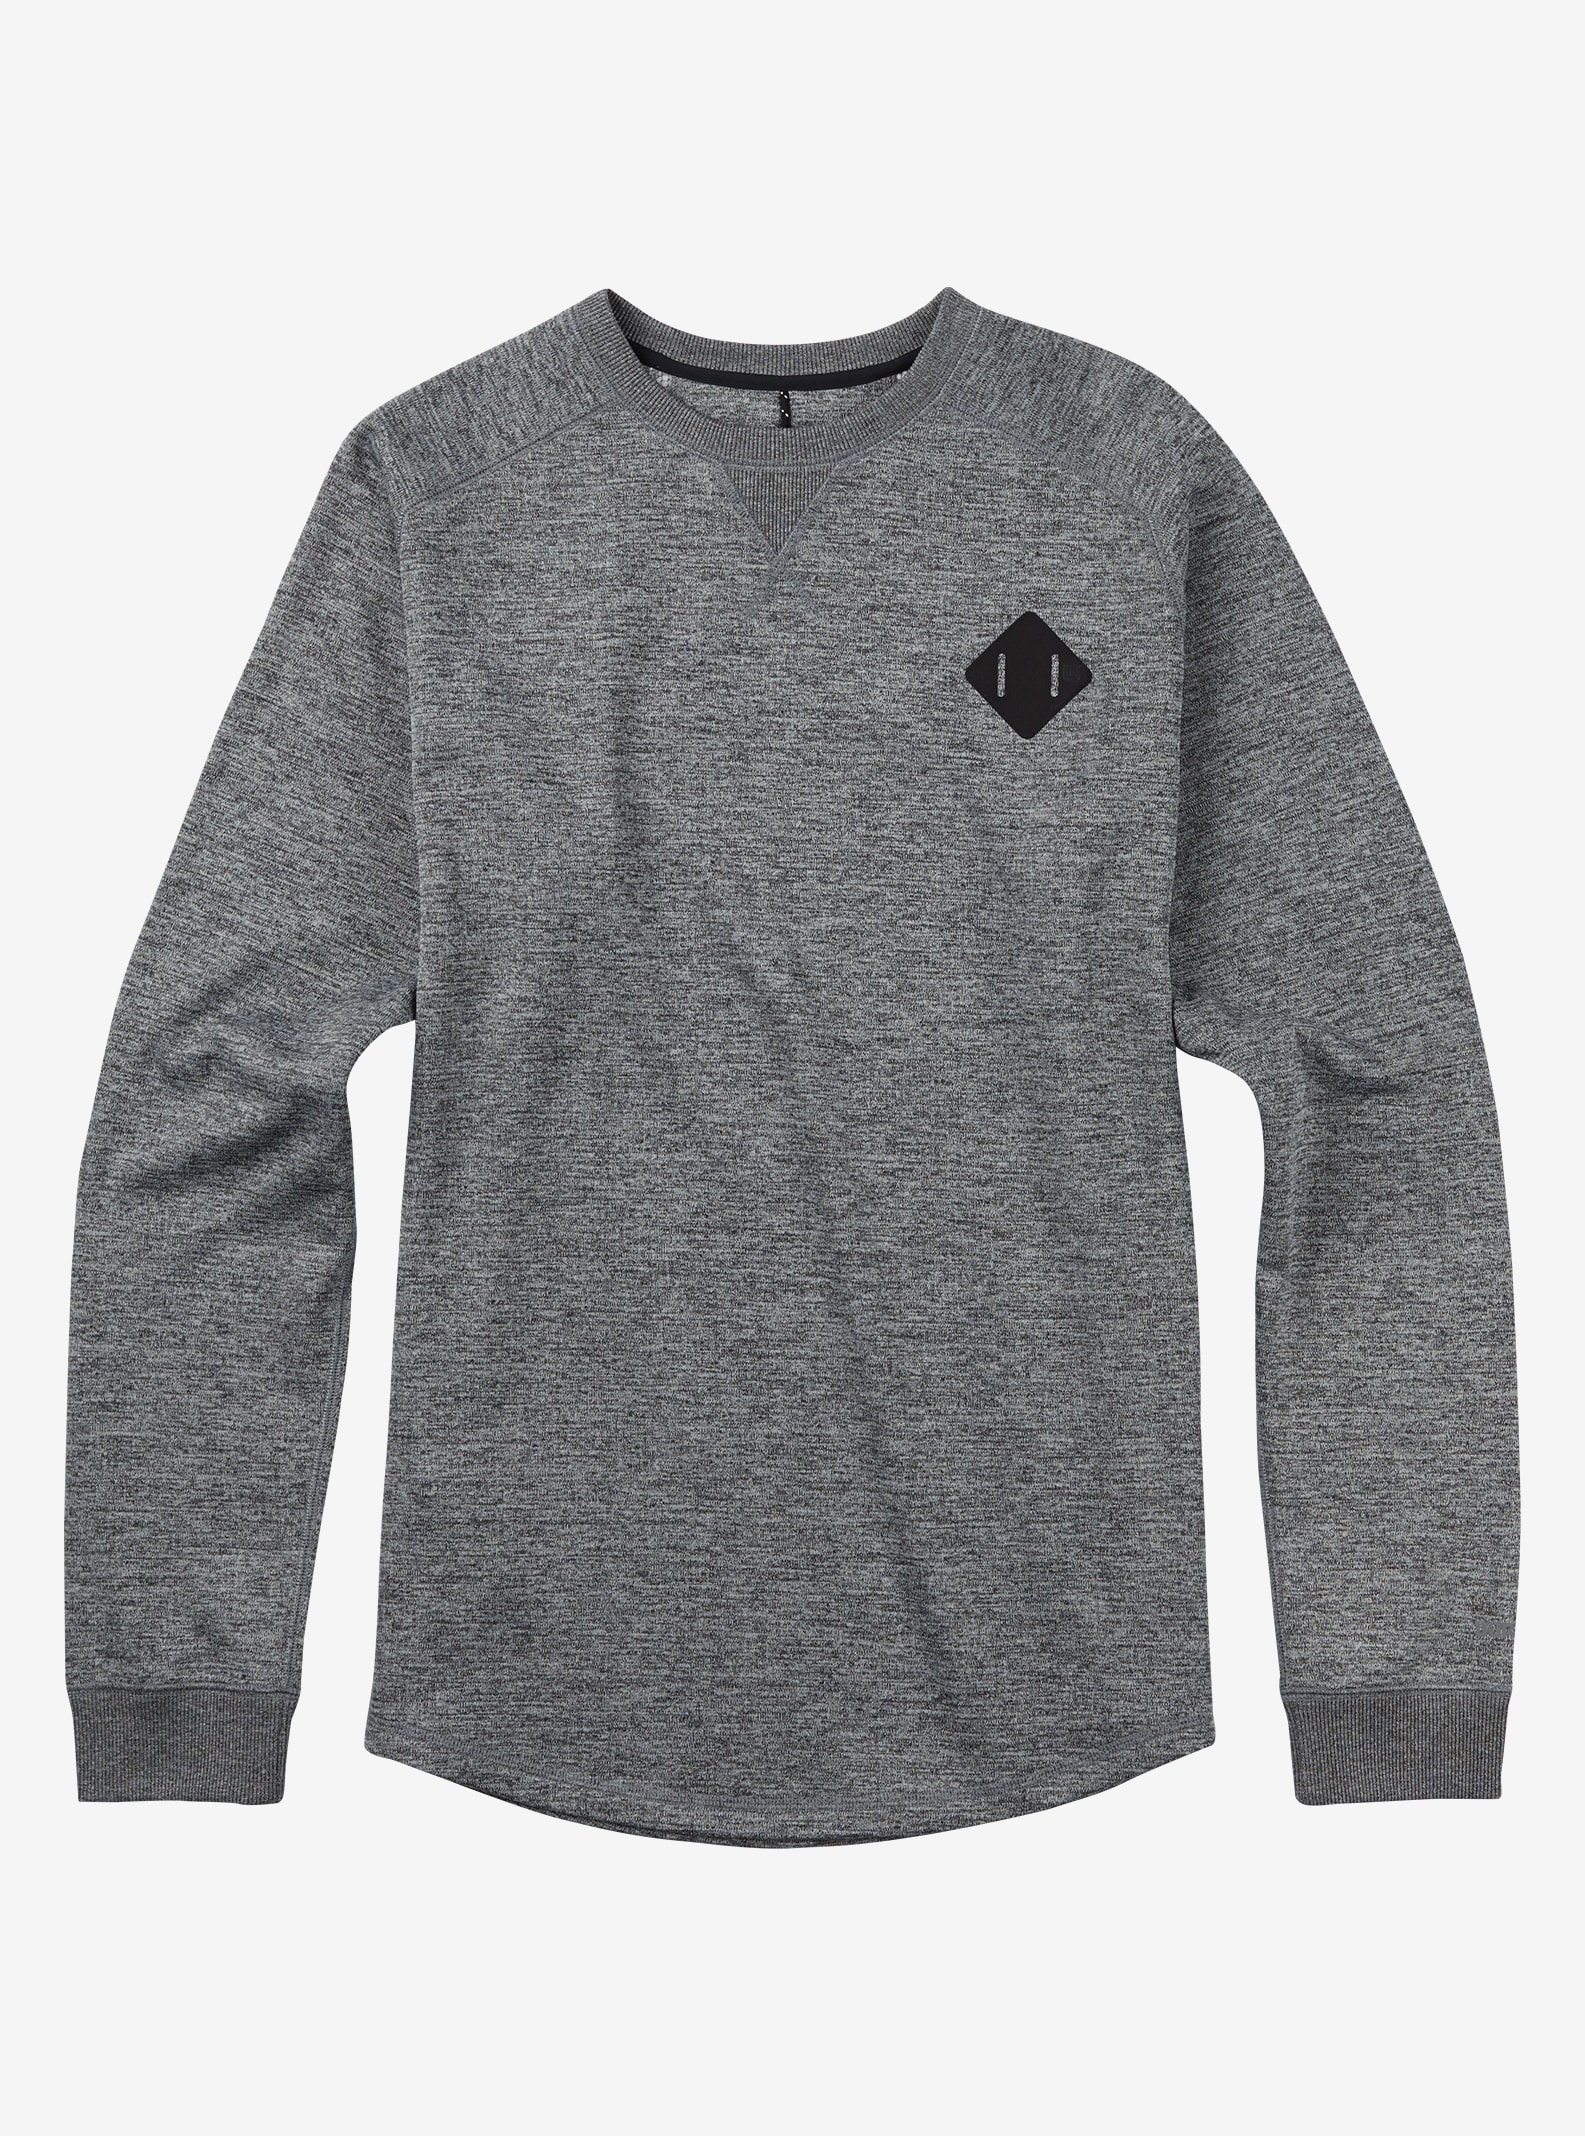 Burton Caption Crew shown in True Black Heather